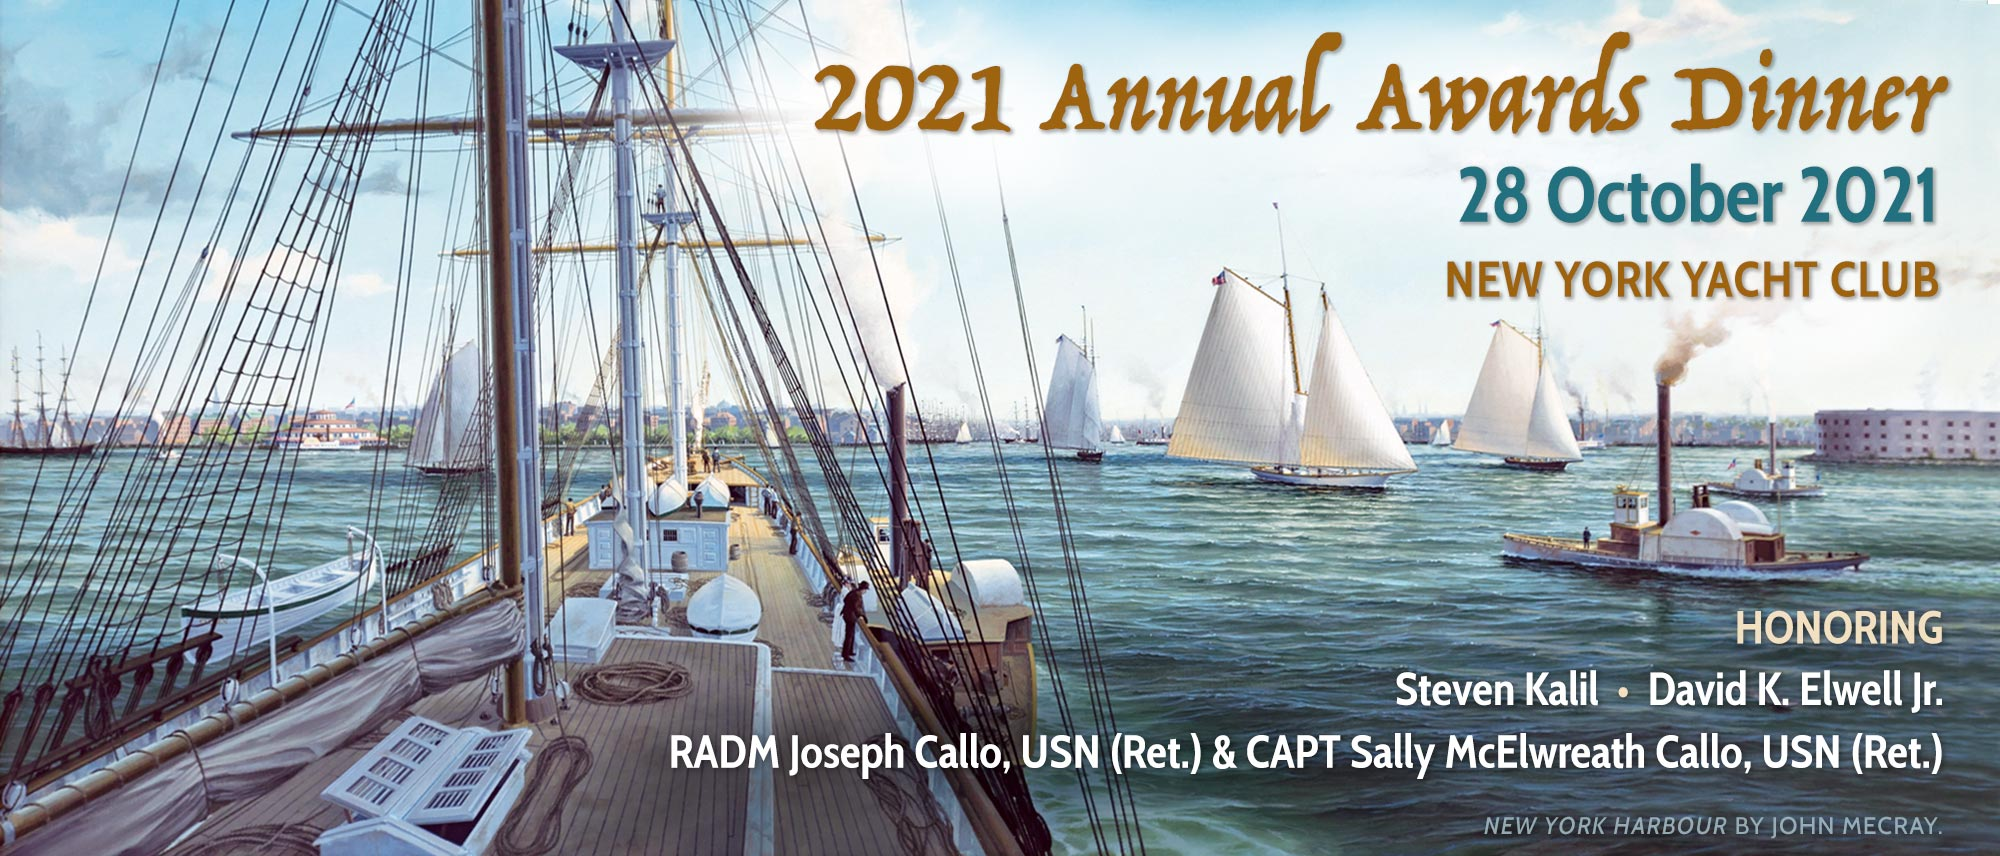 2021 Annual Awards Dinner at the New York Yacht Club 28 October